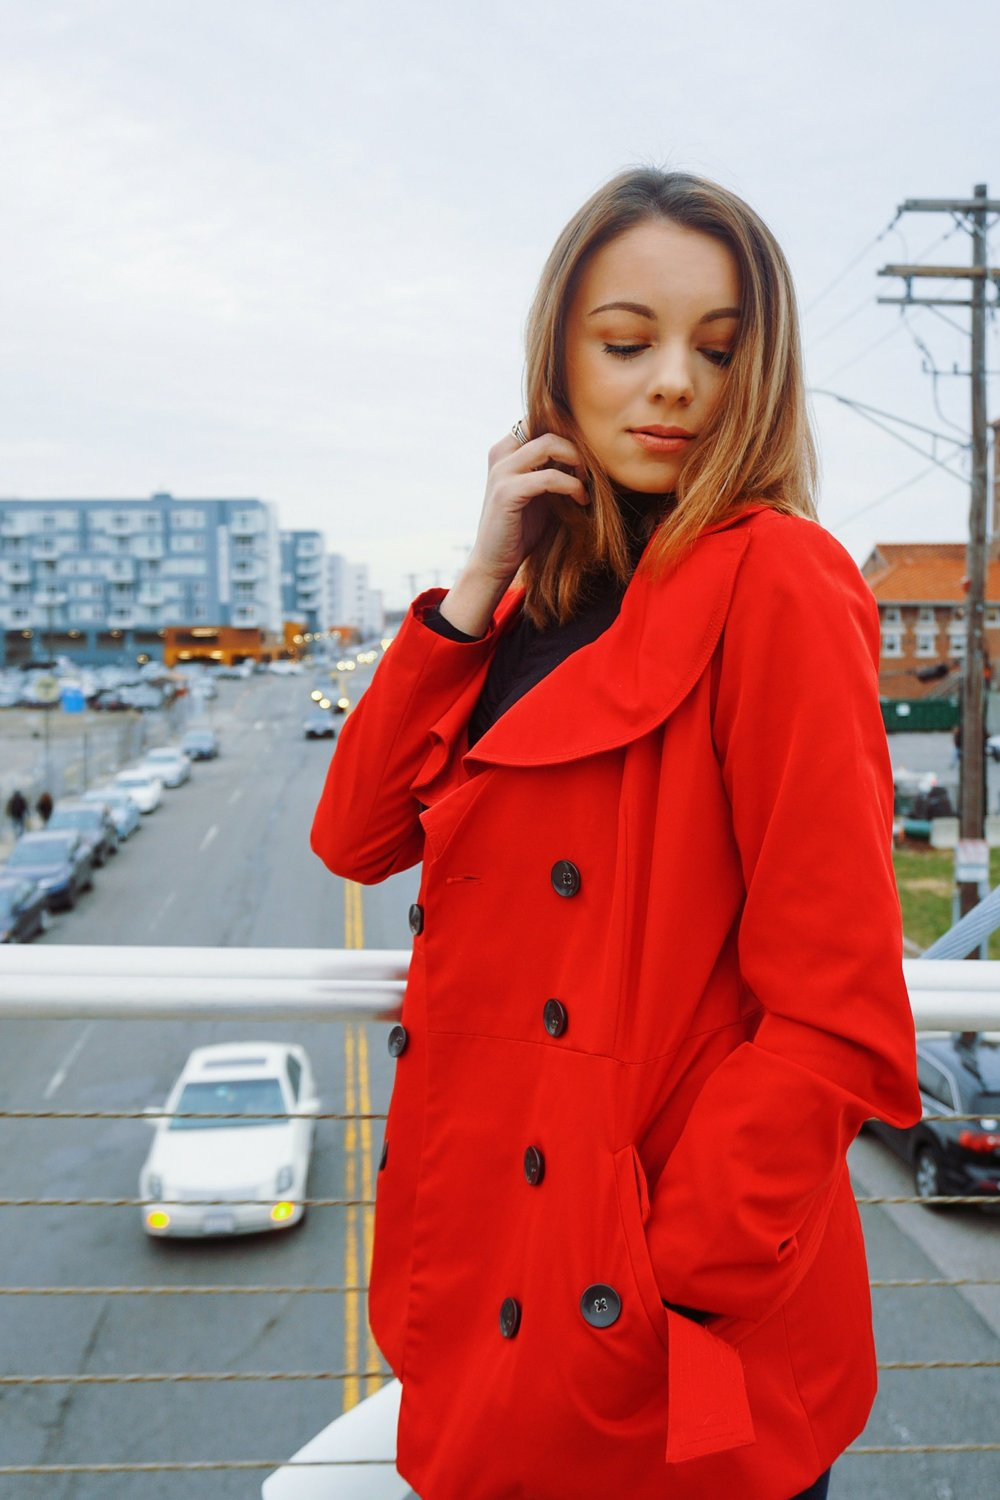 Beauty blogger looking down in the picture, wearing a red coat with ruffles in the front of it.